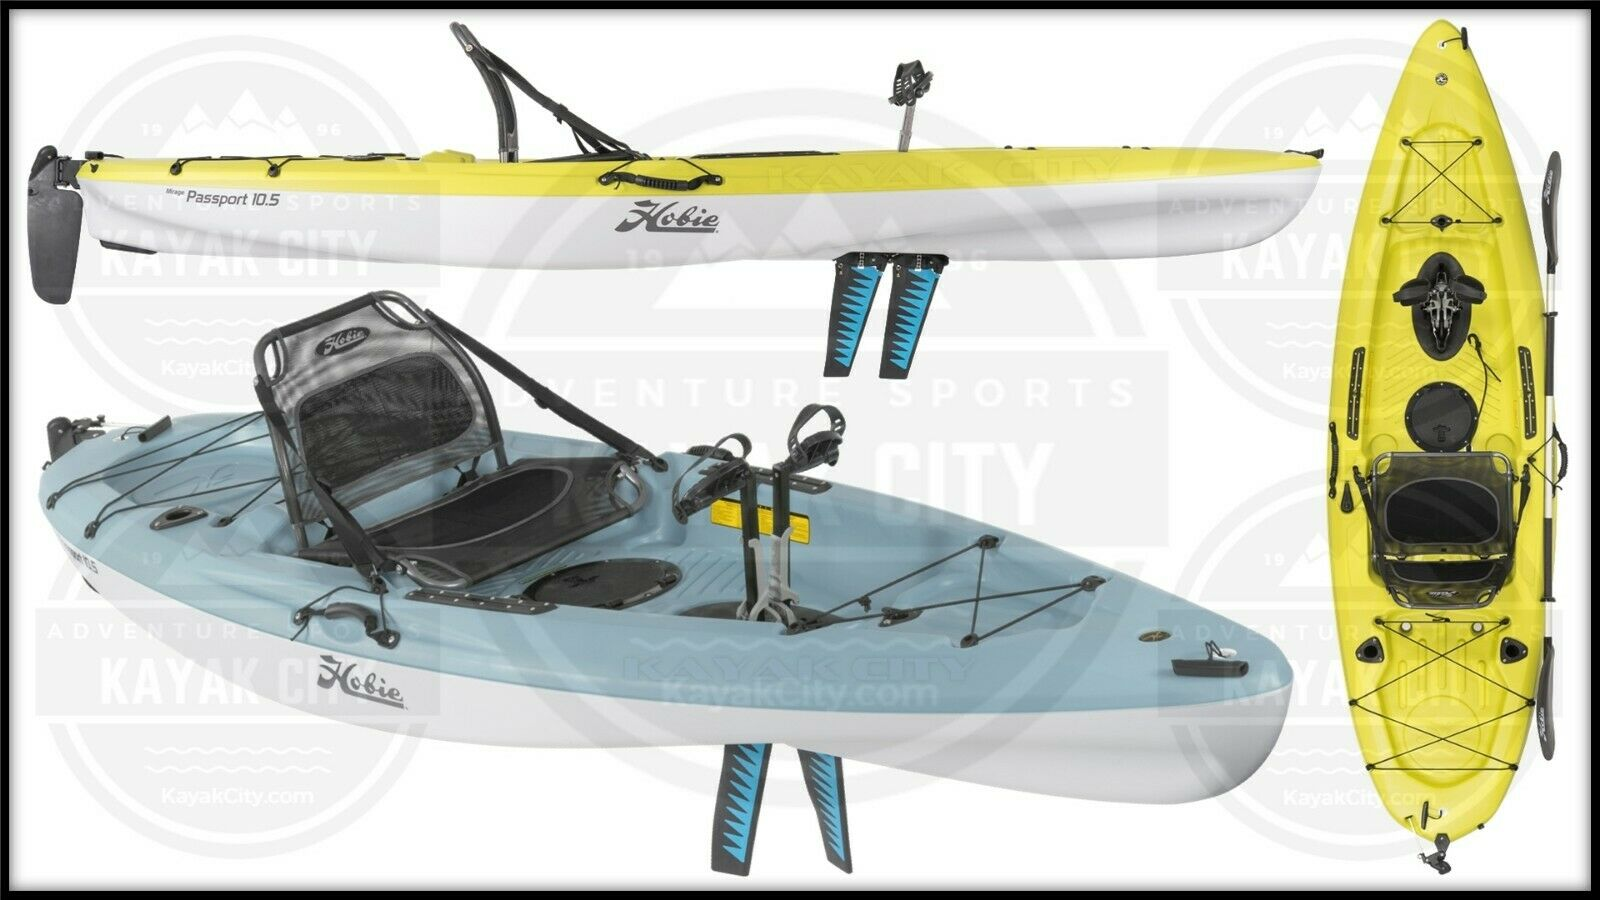 2019 Hobie Mirage Passport 10.5 - Pedal Fishing Kayak